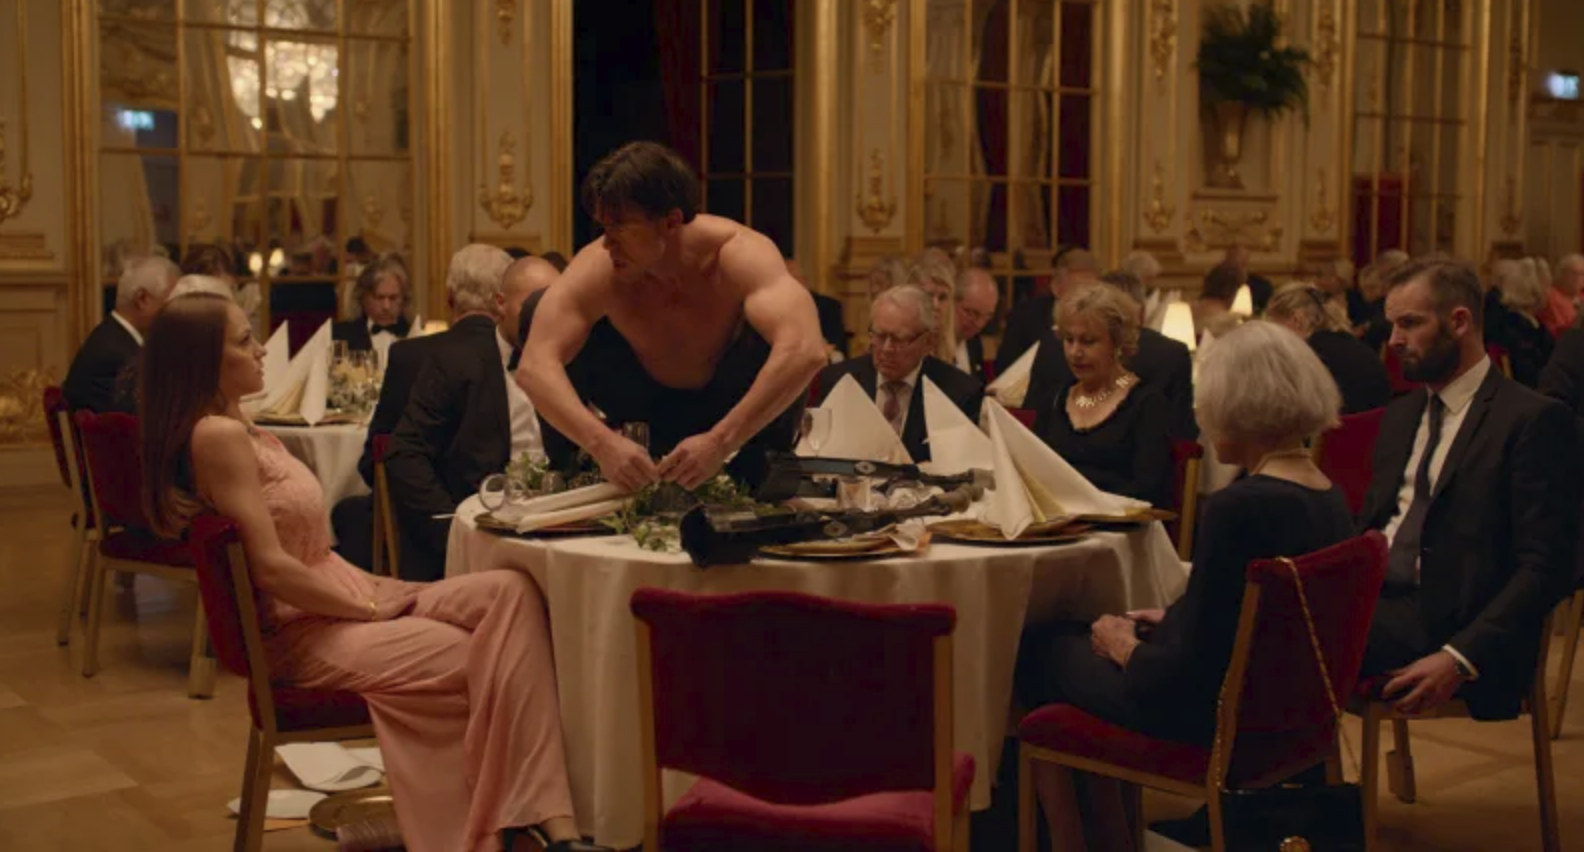 The Square  (2017) - courtesy of the artist